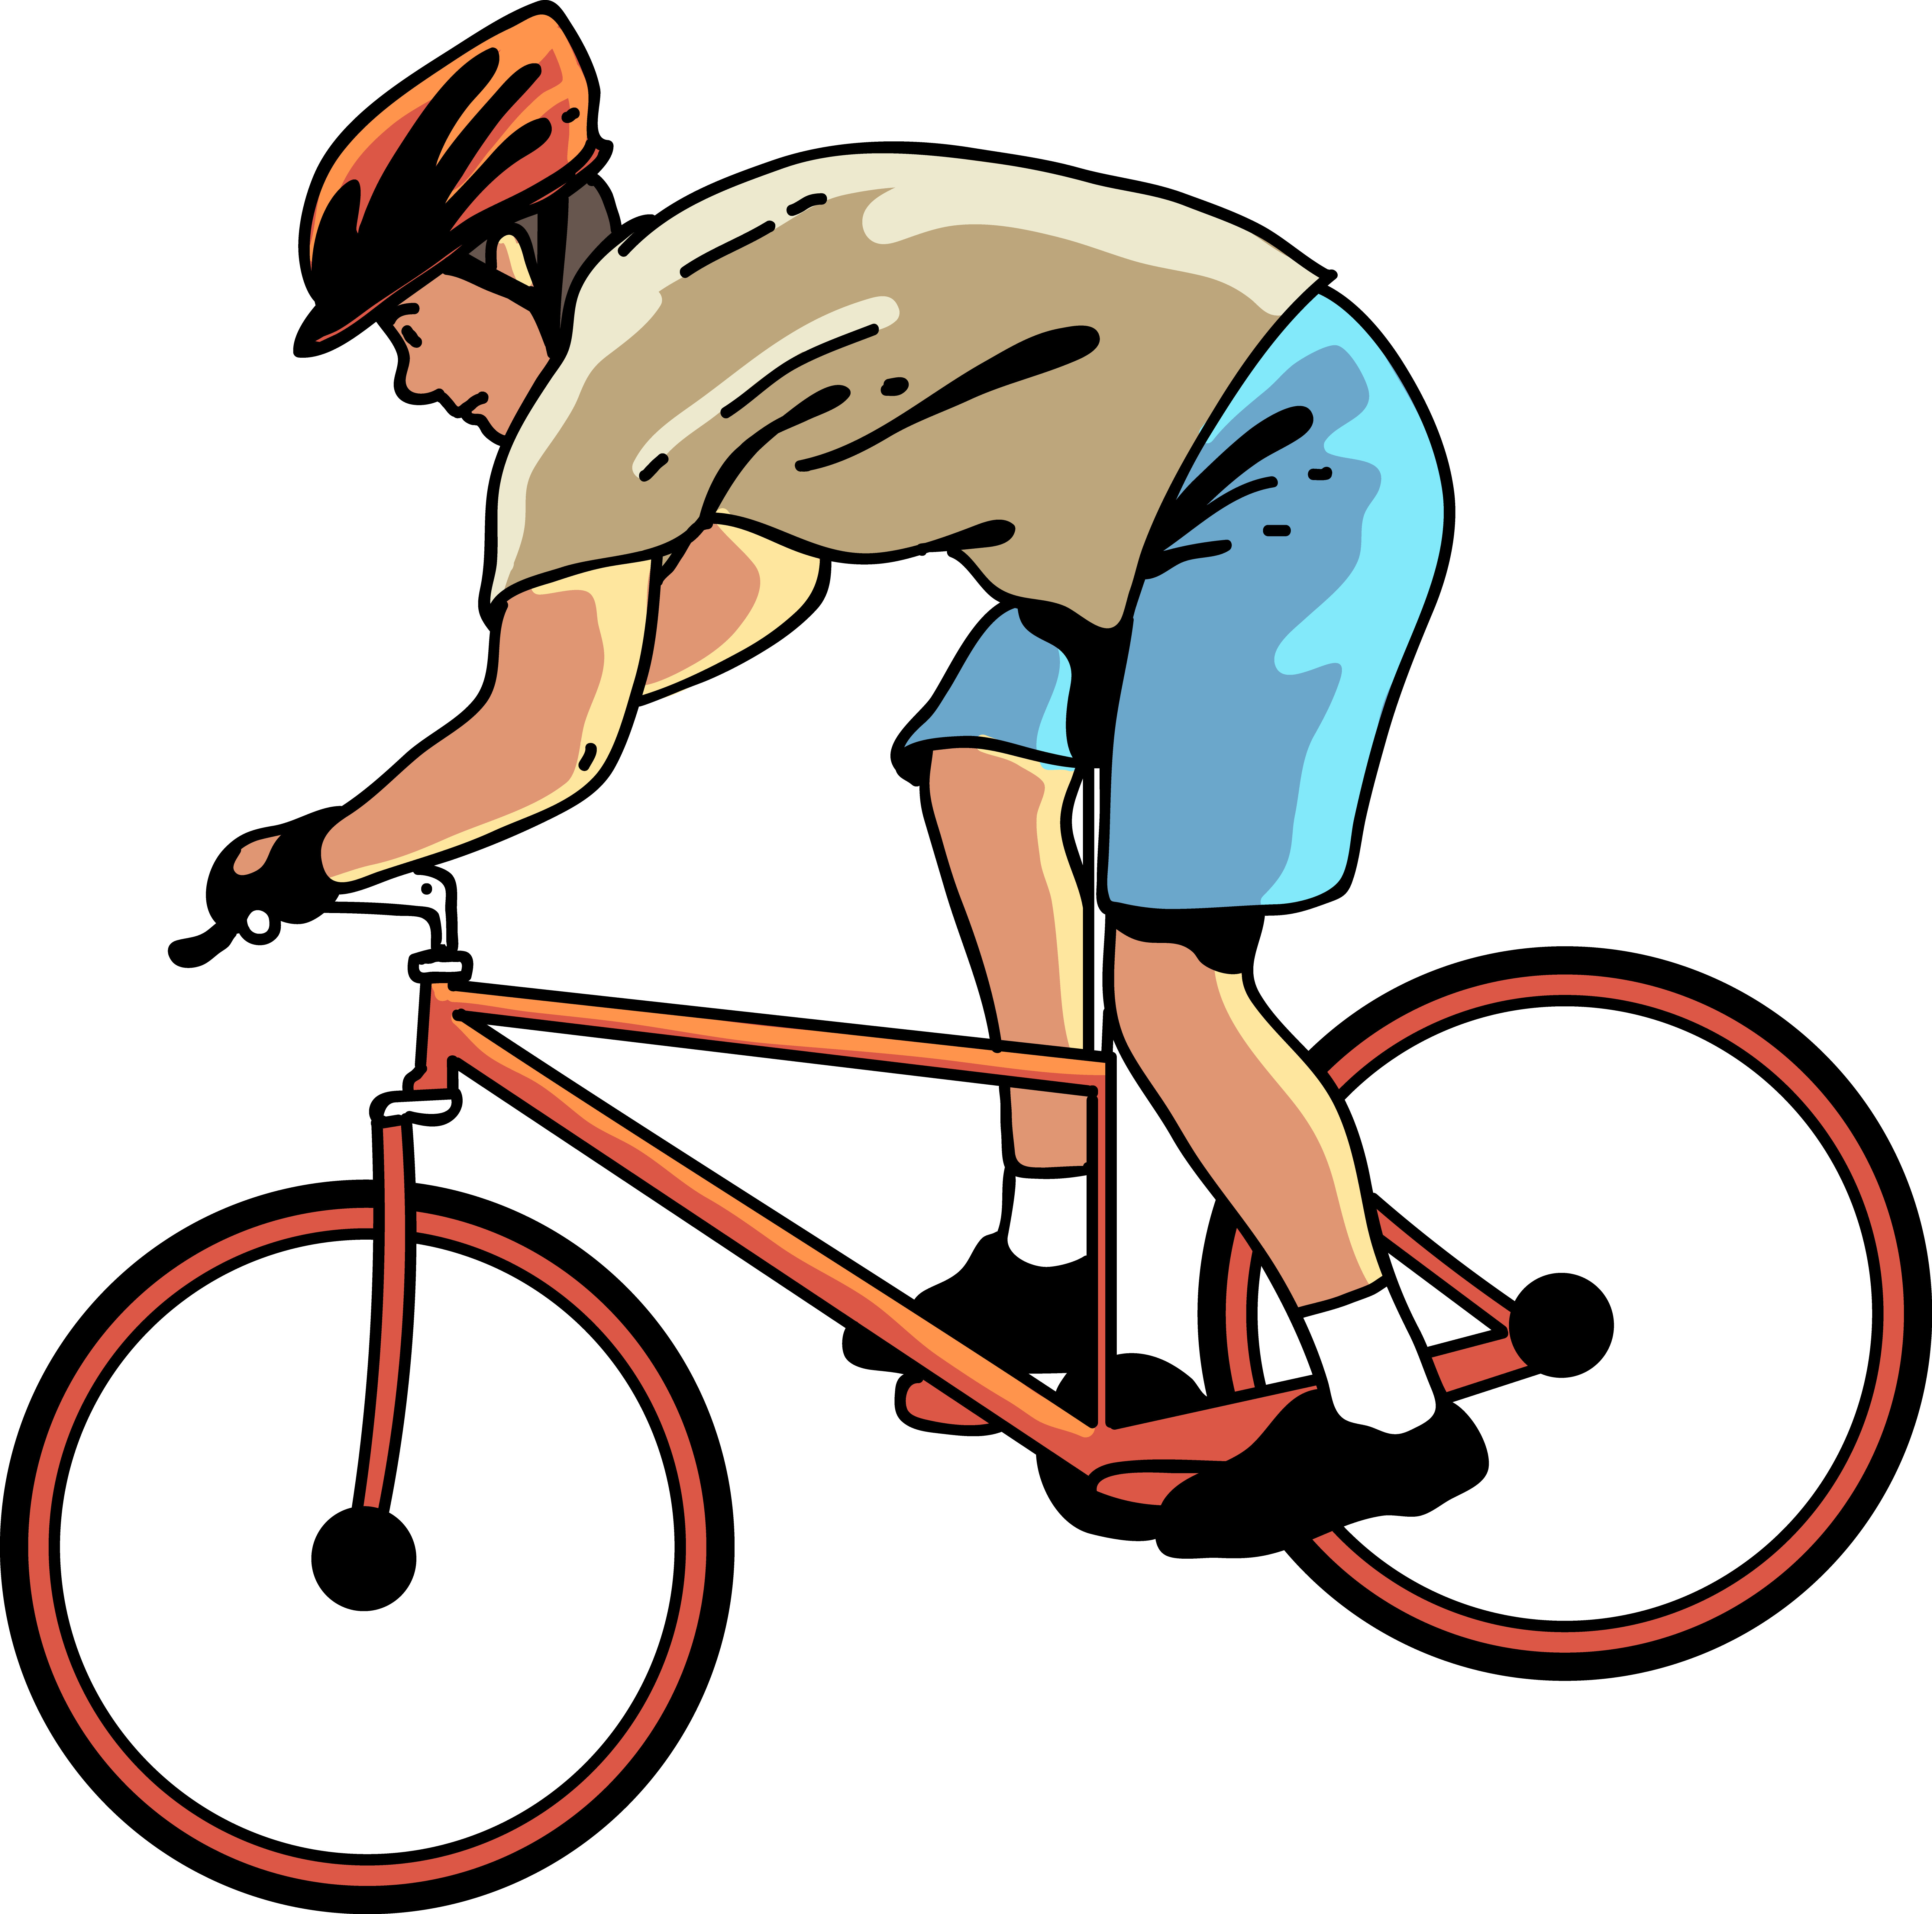 Cycling bicycle frame clip. Cycle clipart kind vehicle